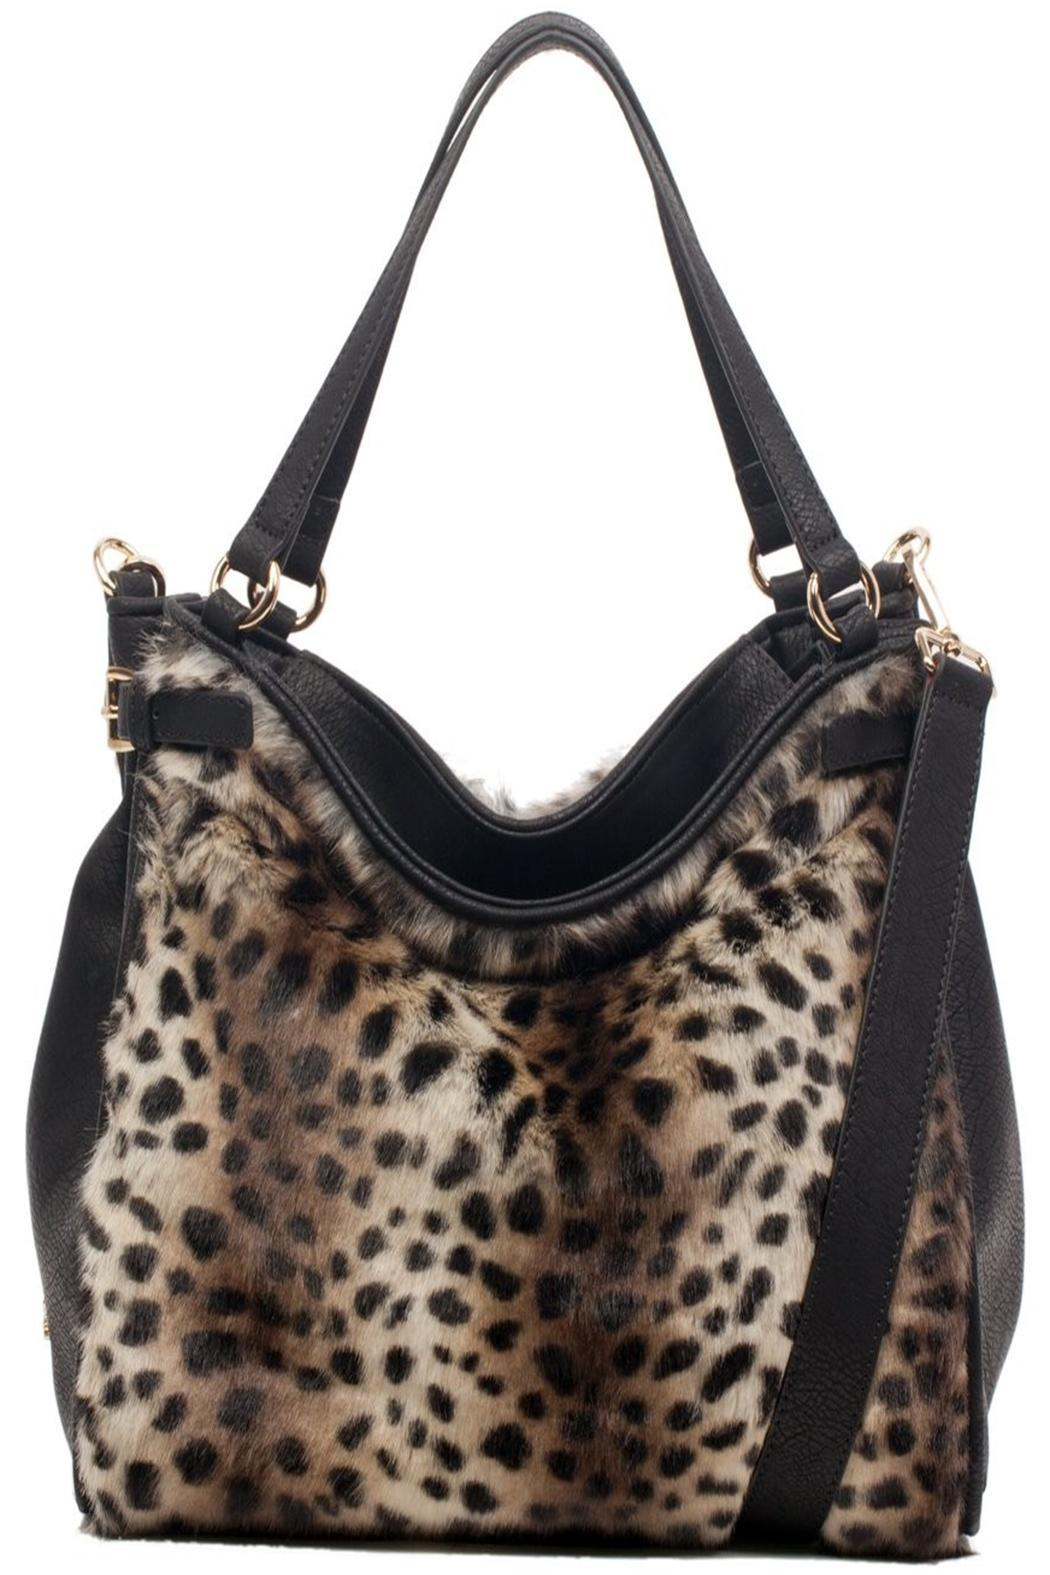 c5f6f56ab9 Claudia   Canova Leopard Fur Handbag from Crouch End by Scarecrow ...